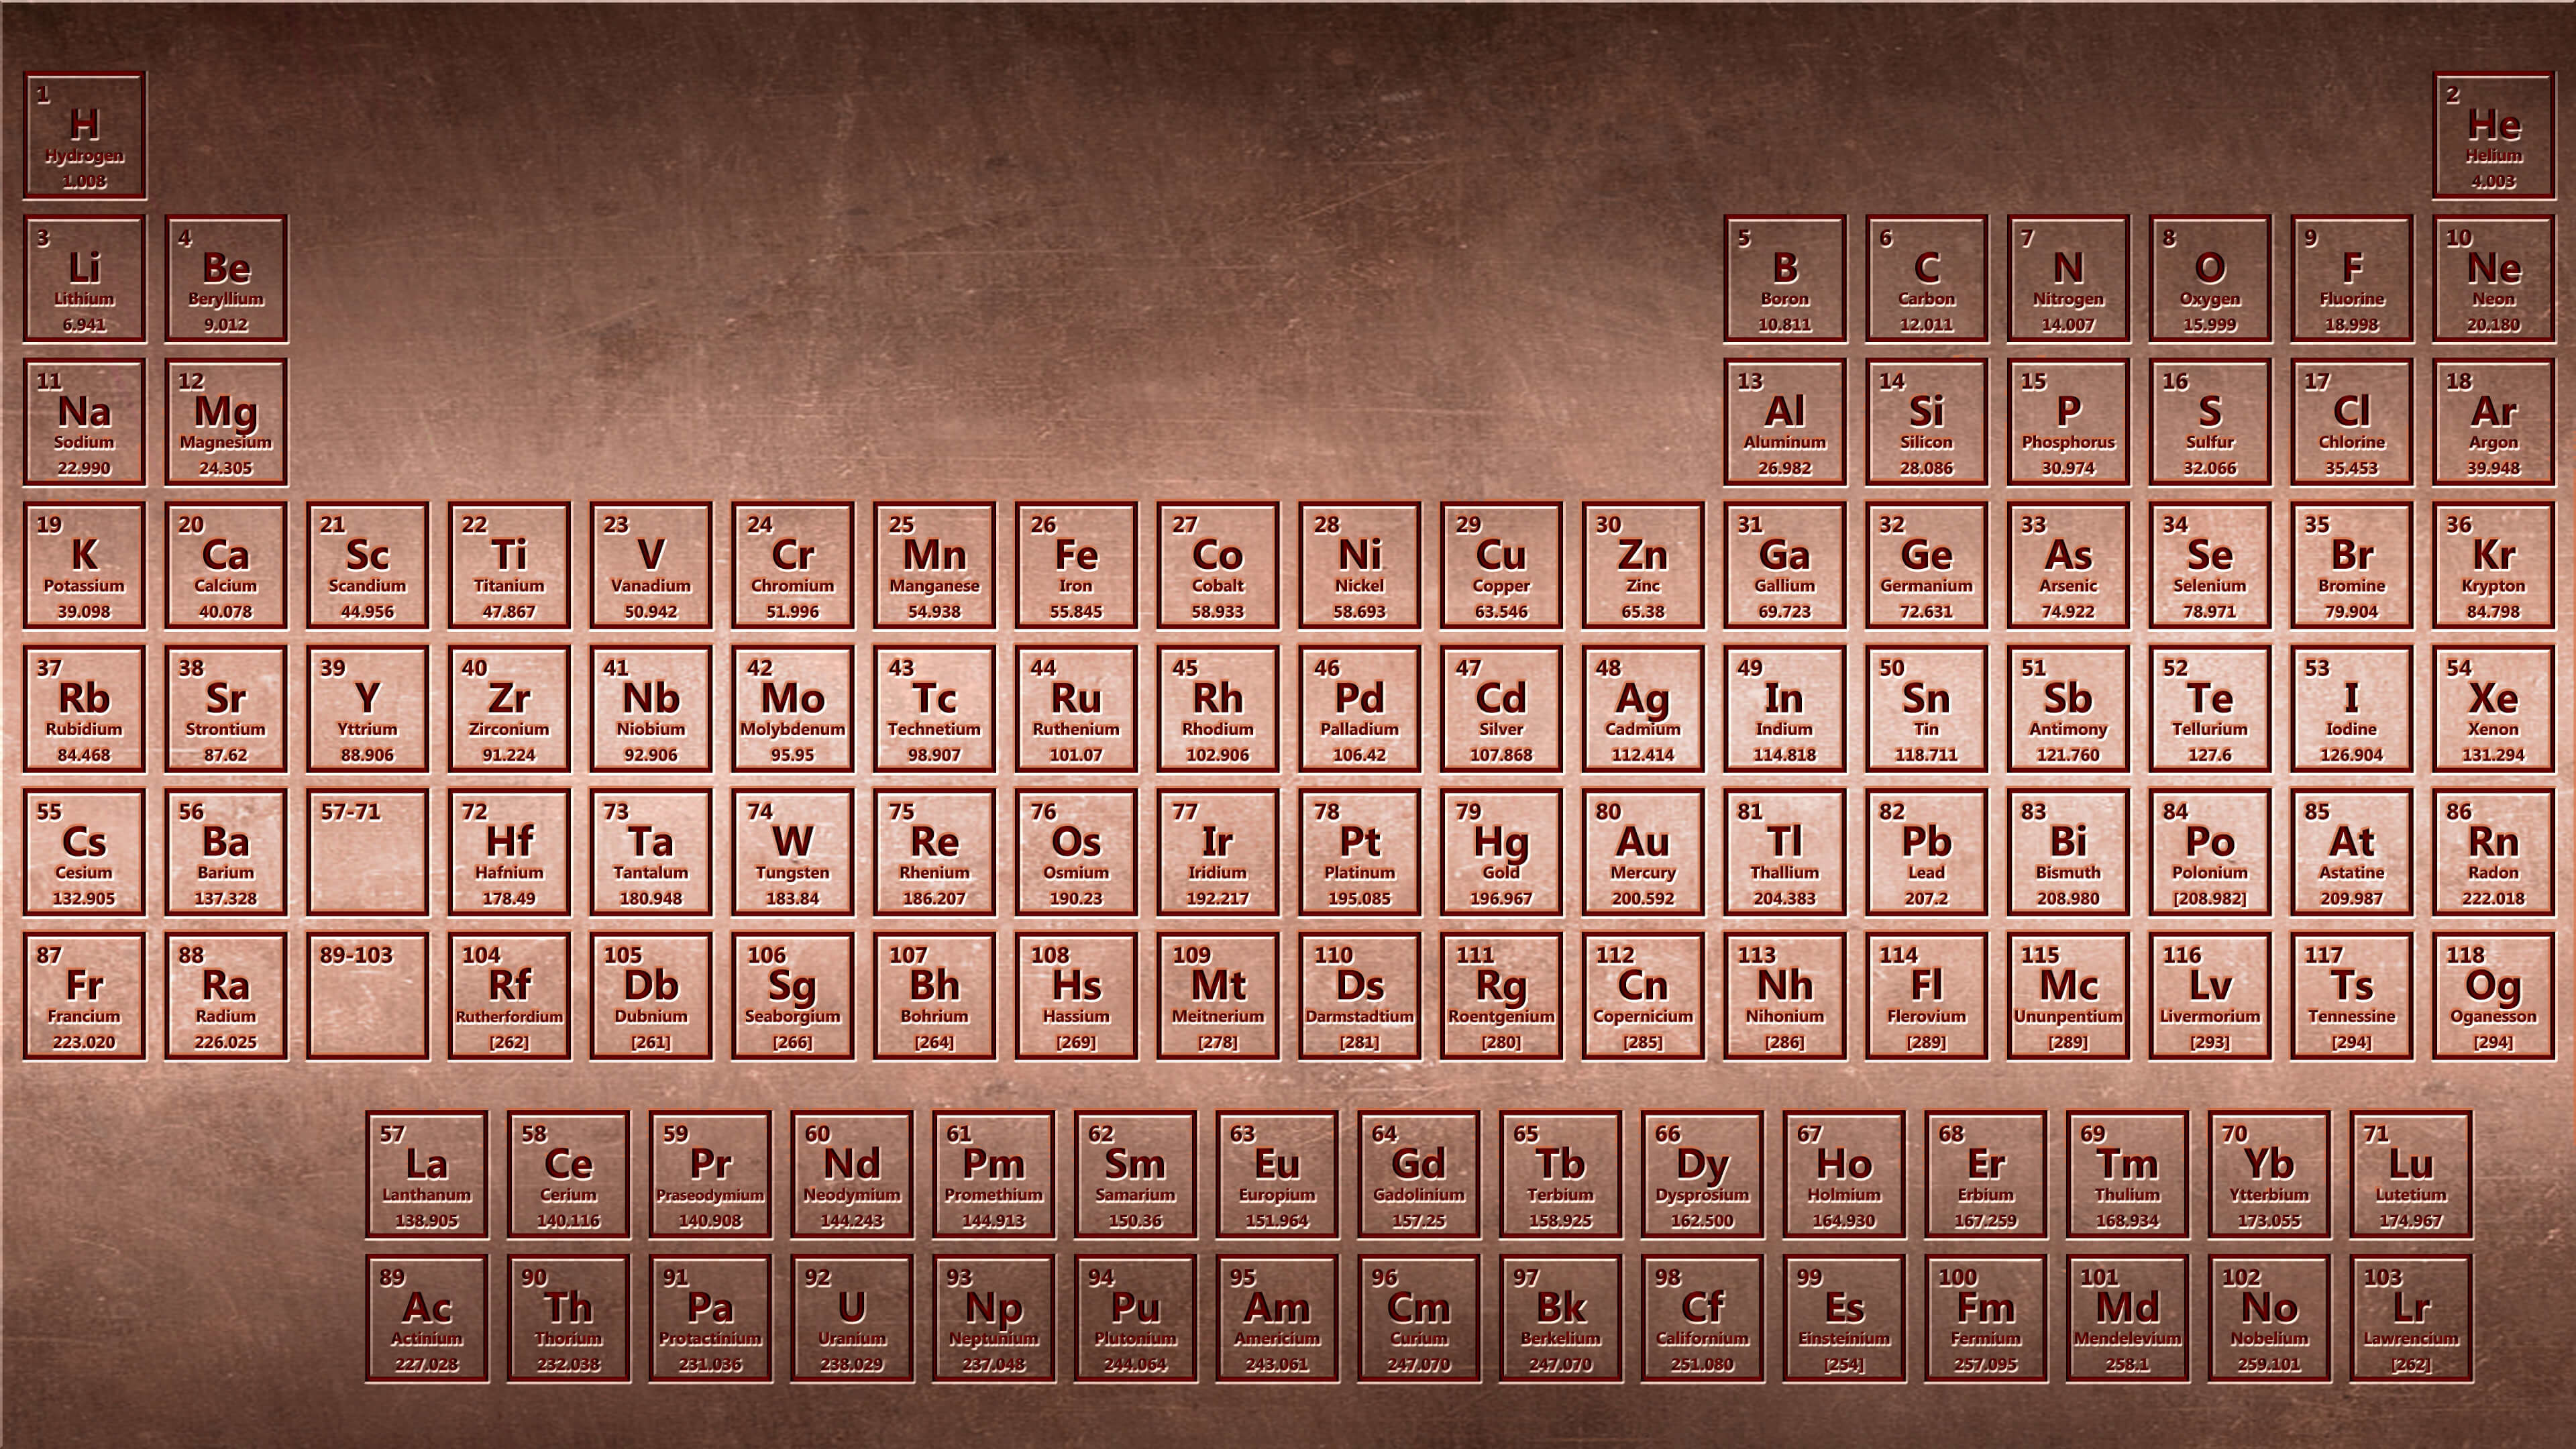 1920x1080 tabla periodica wallpaper fresh neon hexagon periodic table wallpapers hd periodic table new new periodic table elements neon ibcltd